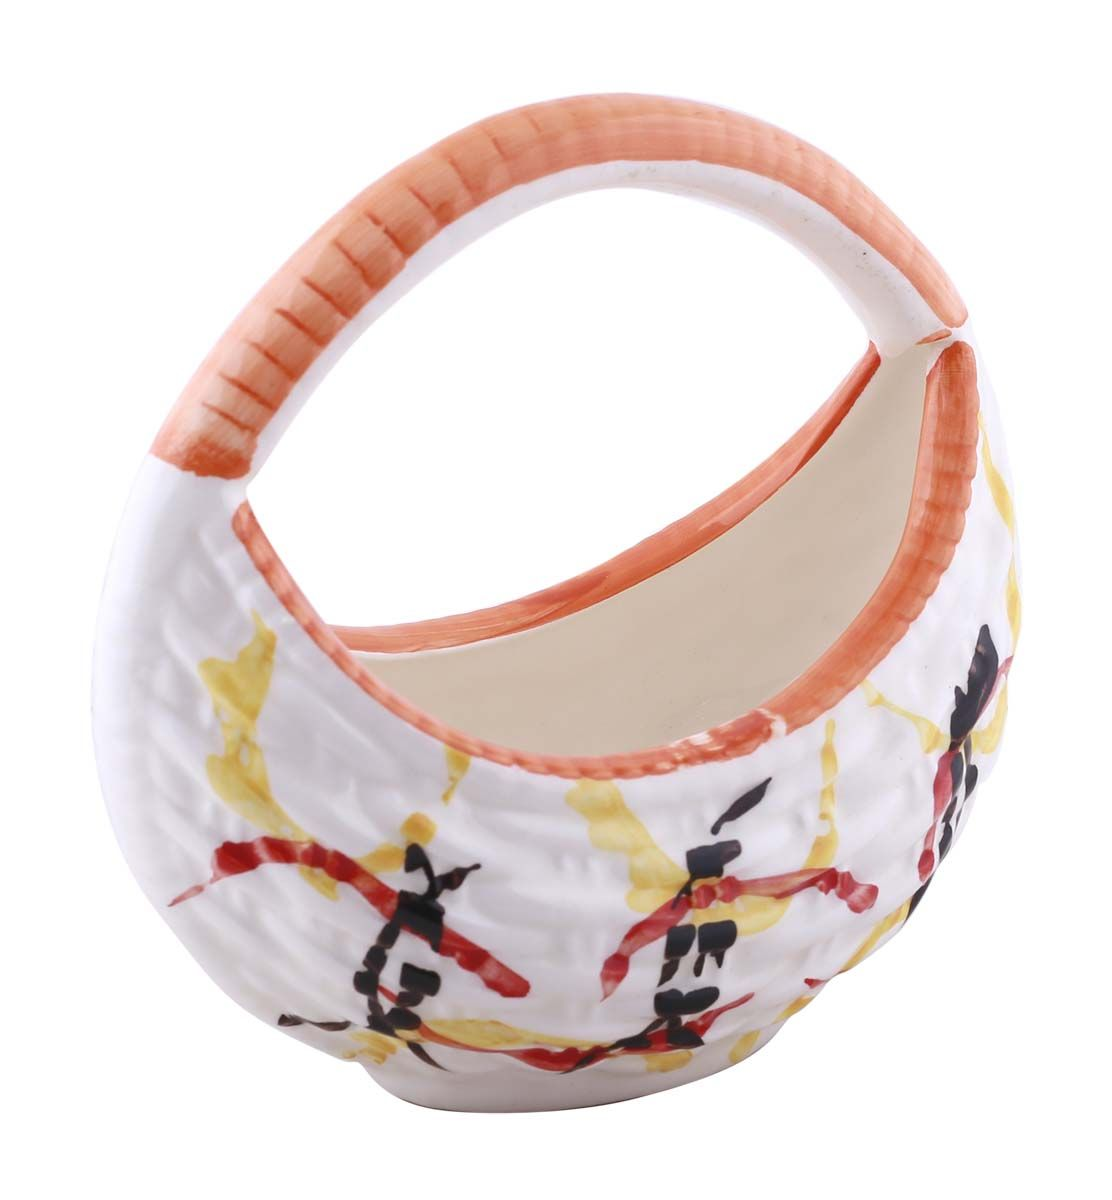 Bulk Wholesale Colorful Handmade Ceramic Basket – Orange Yellow ...